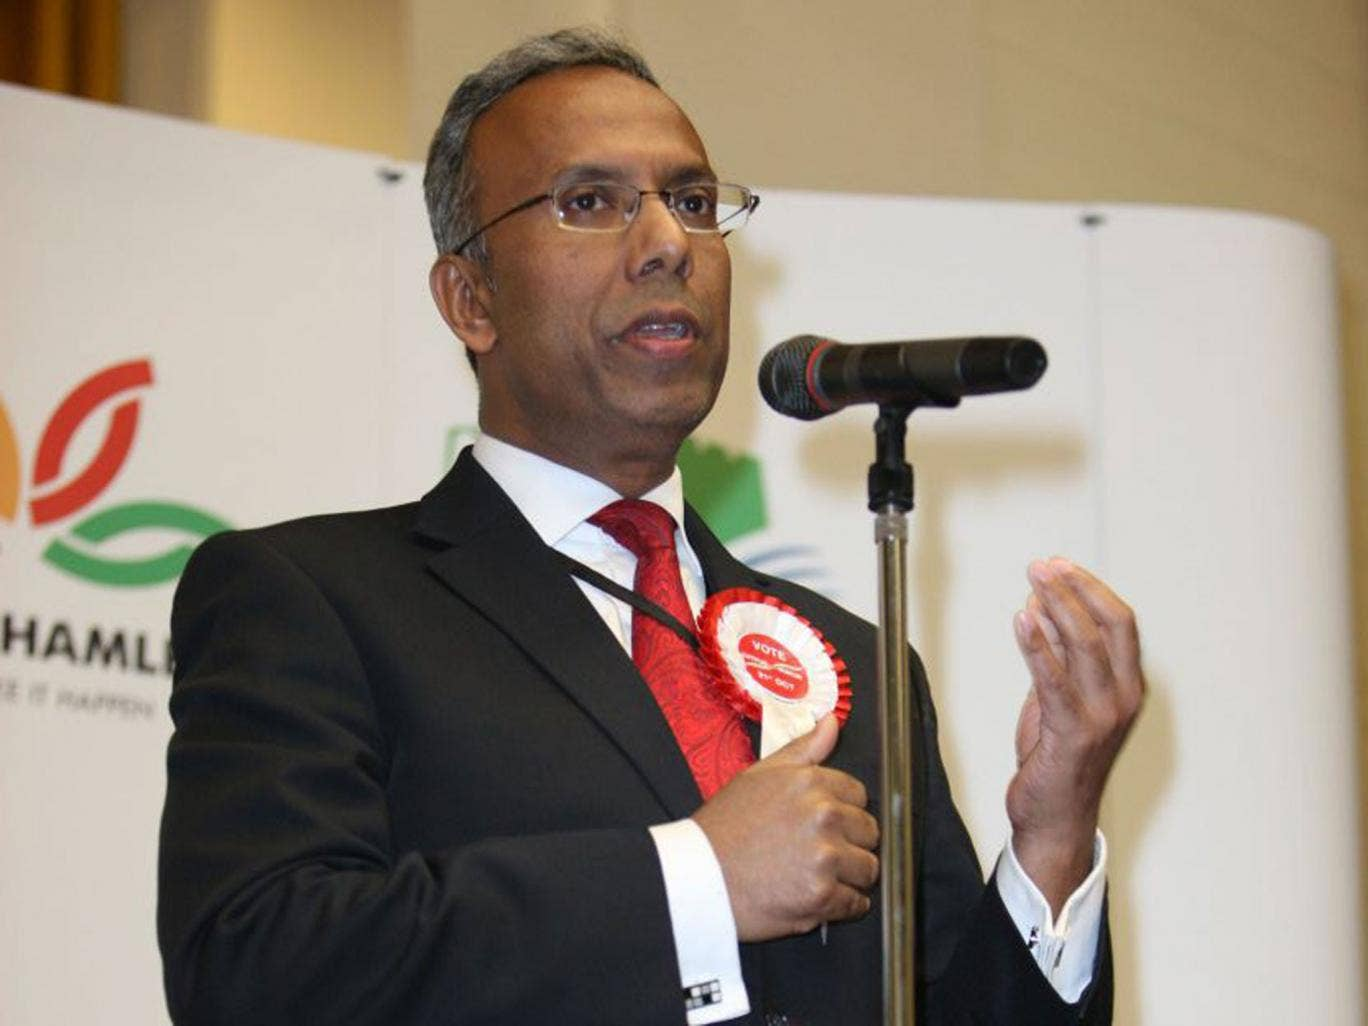 Lutfur Rahman was elected as an independent mayor after being dumped by Labour